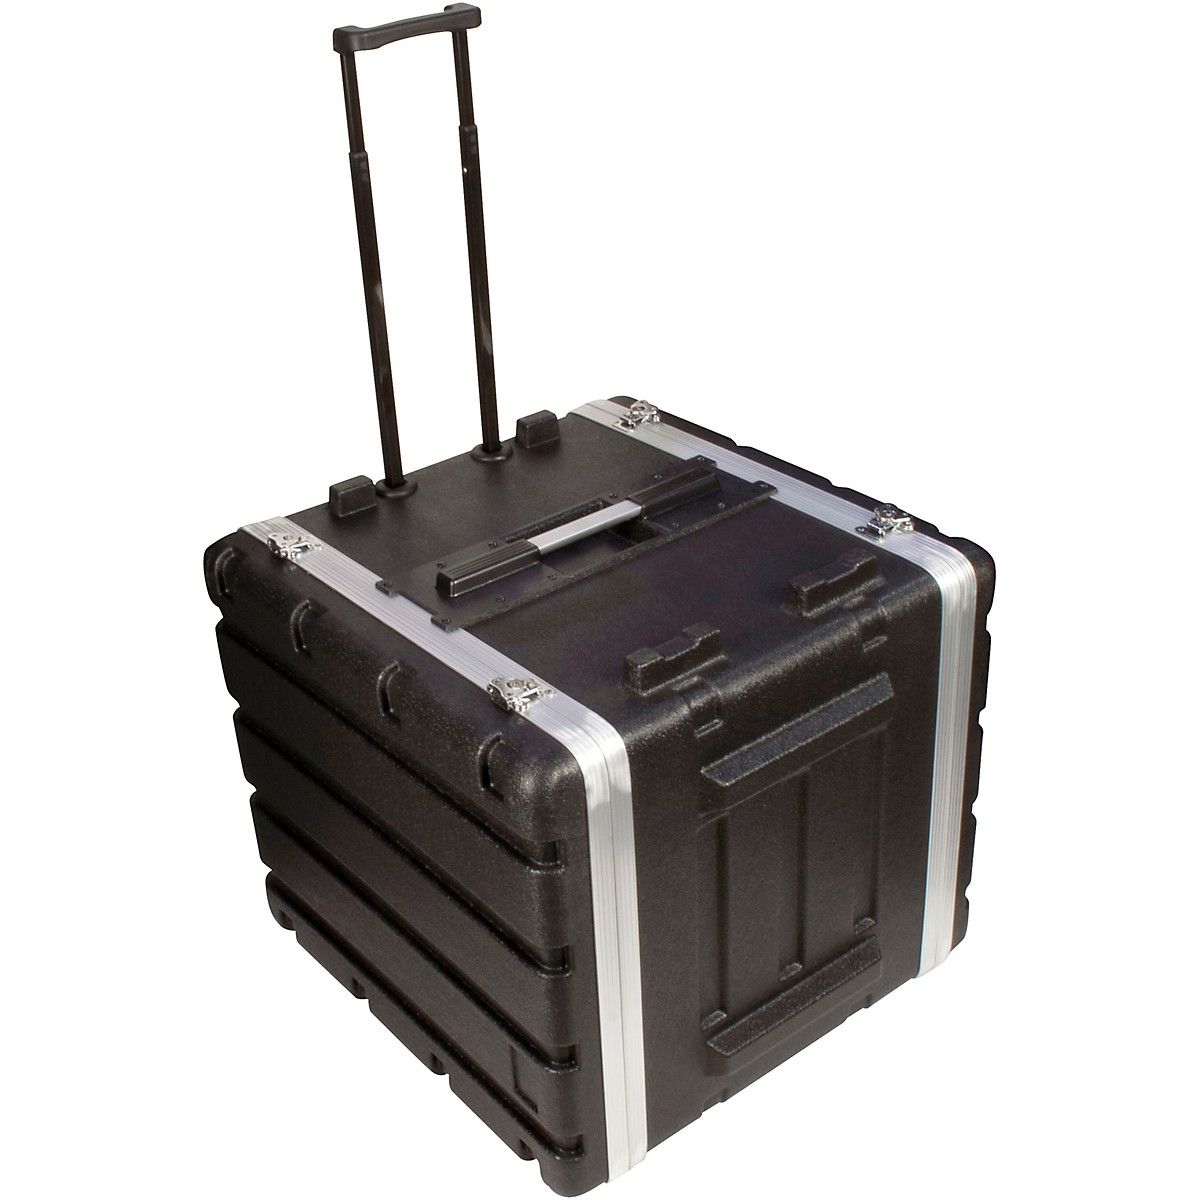 Ultimate Support DuraCase UR-10LTH Rolling 10-Space Rackmount Case